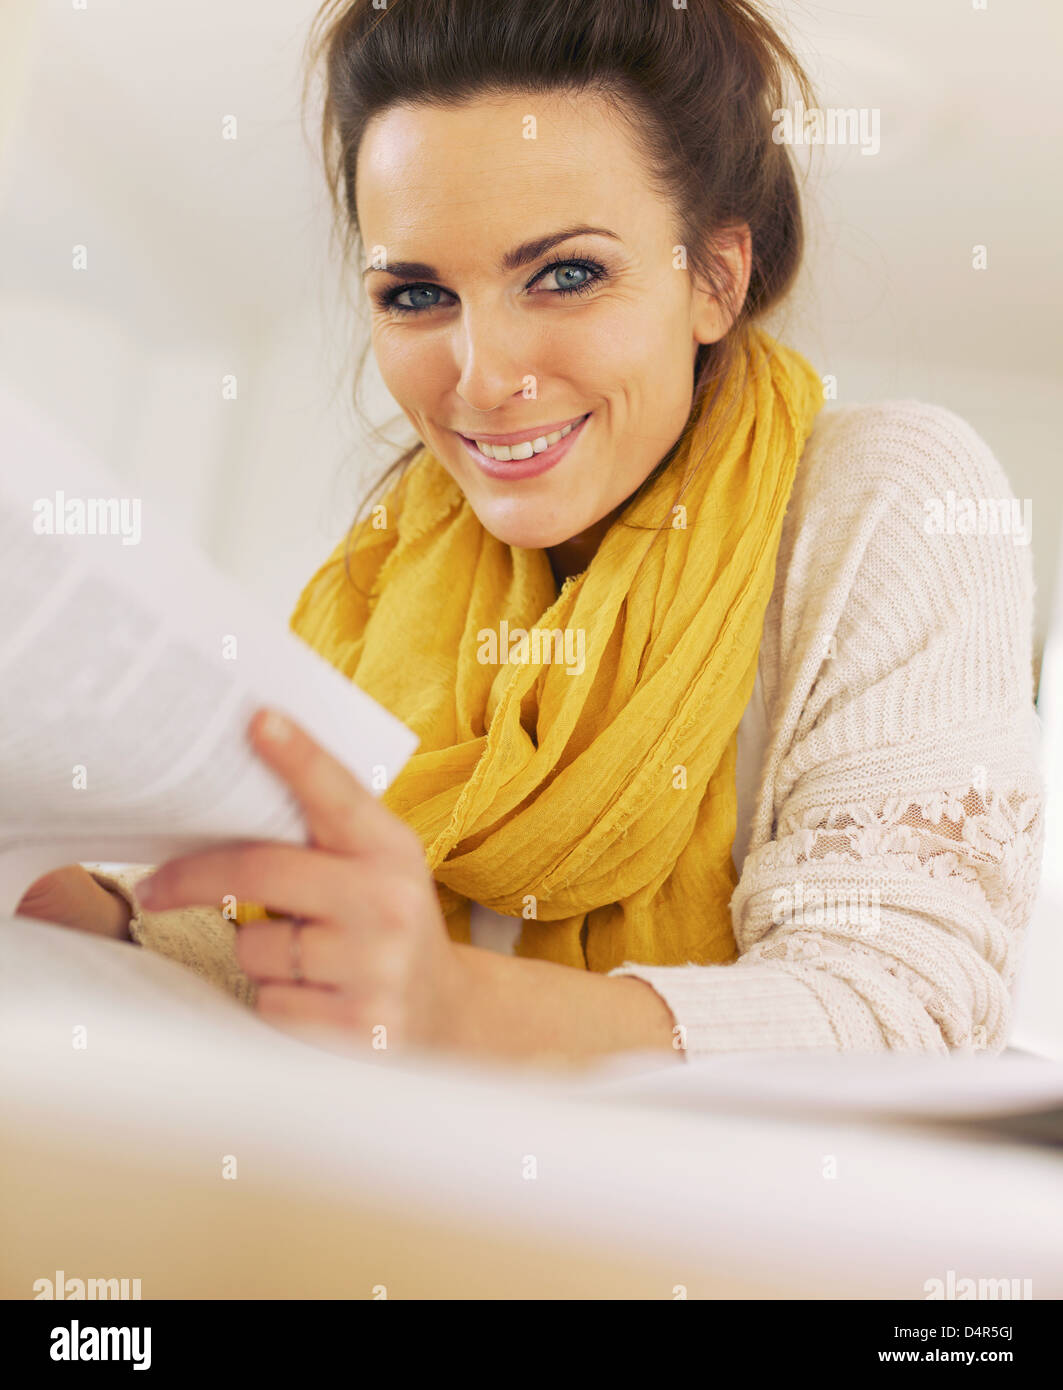 Reader turning the book's pages while looking at the camera - Stock Image